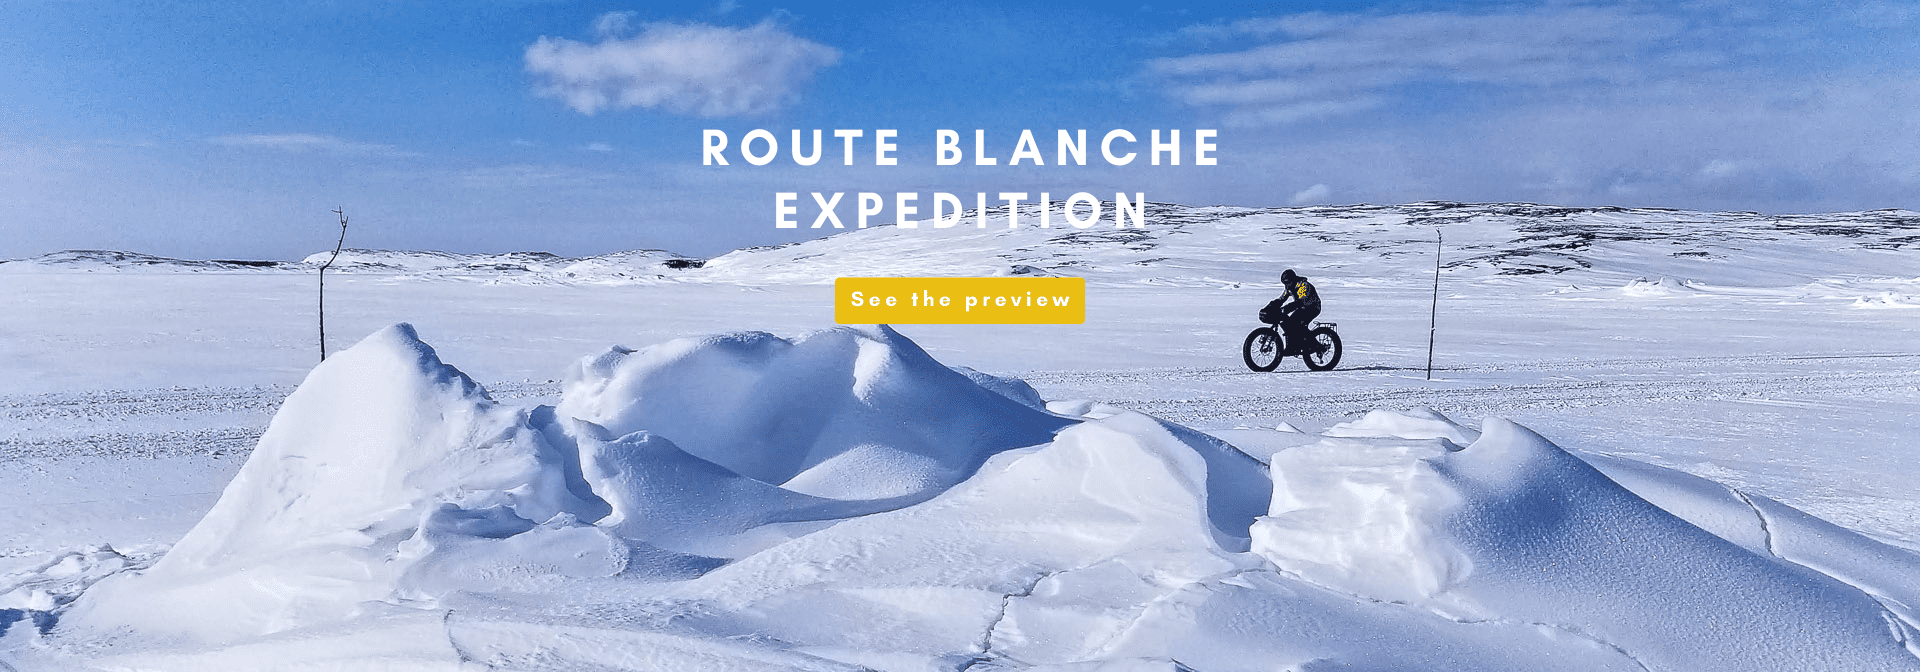 expedition route blanche panorama